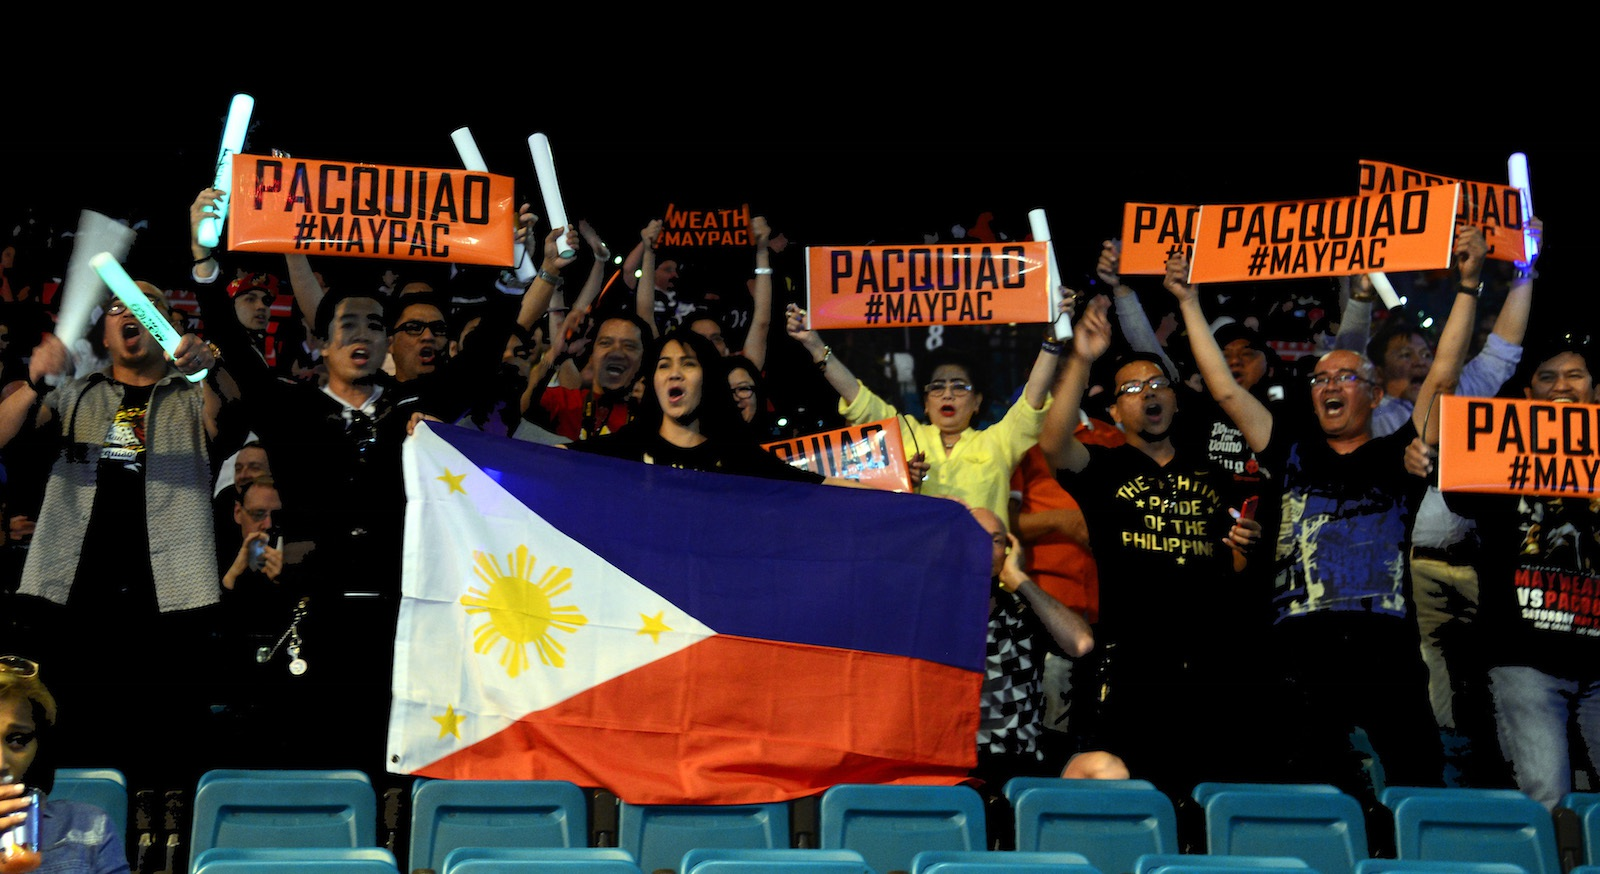 epa04729059 Fans of Filipino boxer Manny Pacquiao hold signs and wave the Philippines national flag prior to the weigh-in with US boxer Floyd Mayweather Jr at MGM Grand Garden Arena in Las Vegas, Nevada, USA, 01 May 2015.  Pacquiao will fight Mayweater Jr. for the WBC welterweight title bout  on 02 May in Las Vegas.  EPA/MICHAEL NELSON